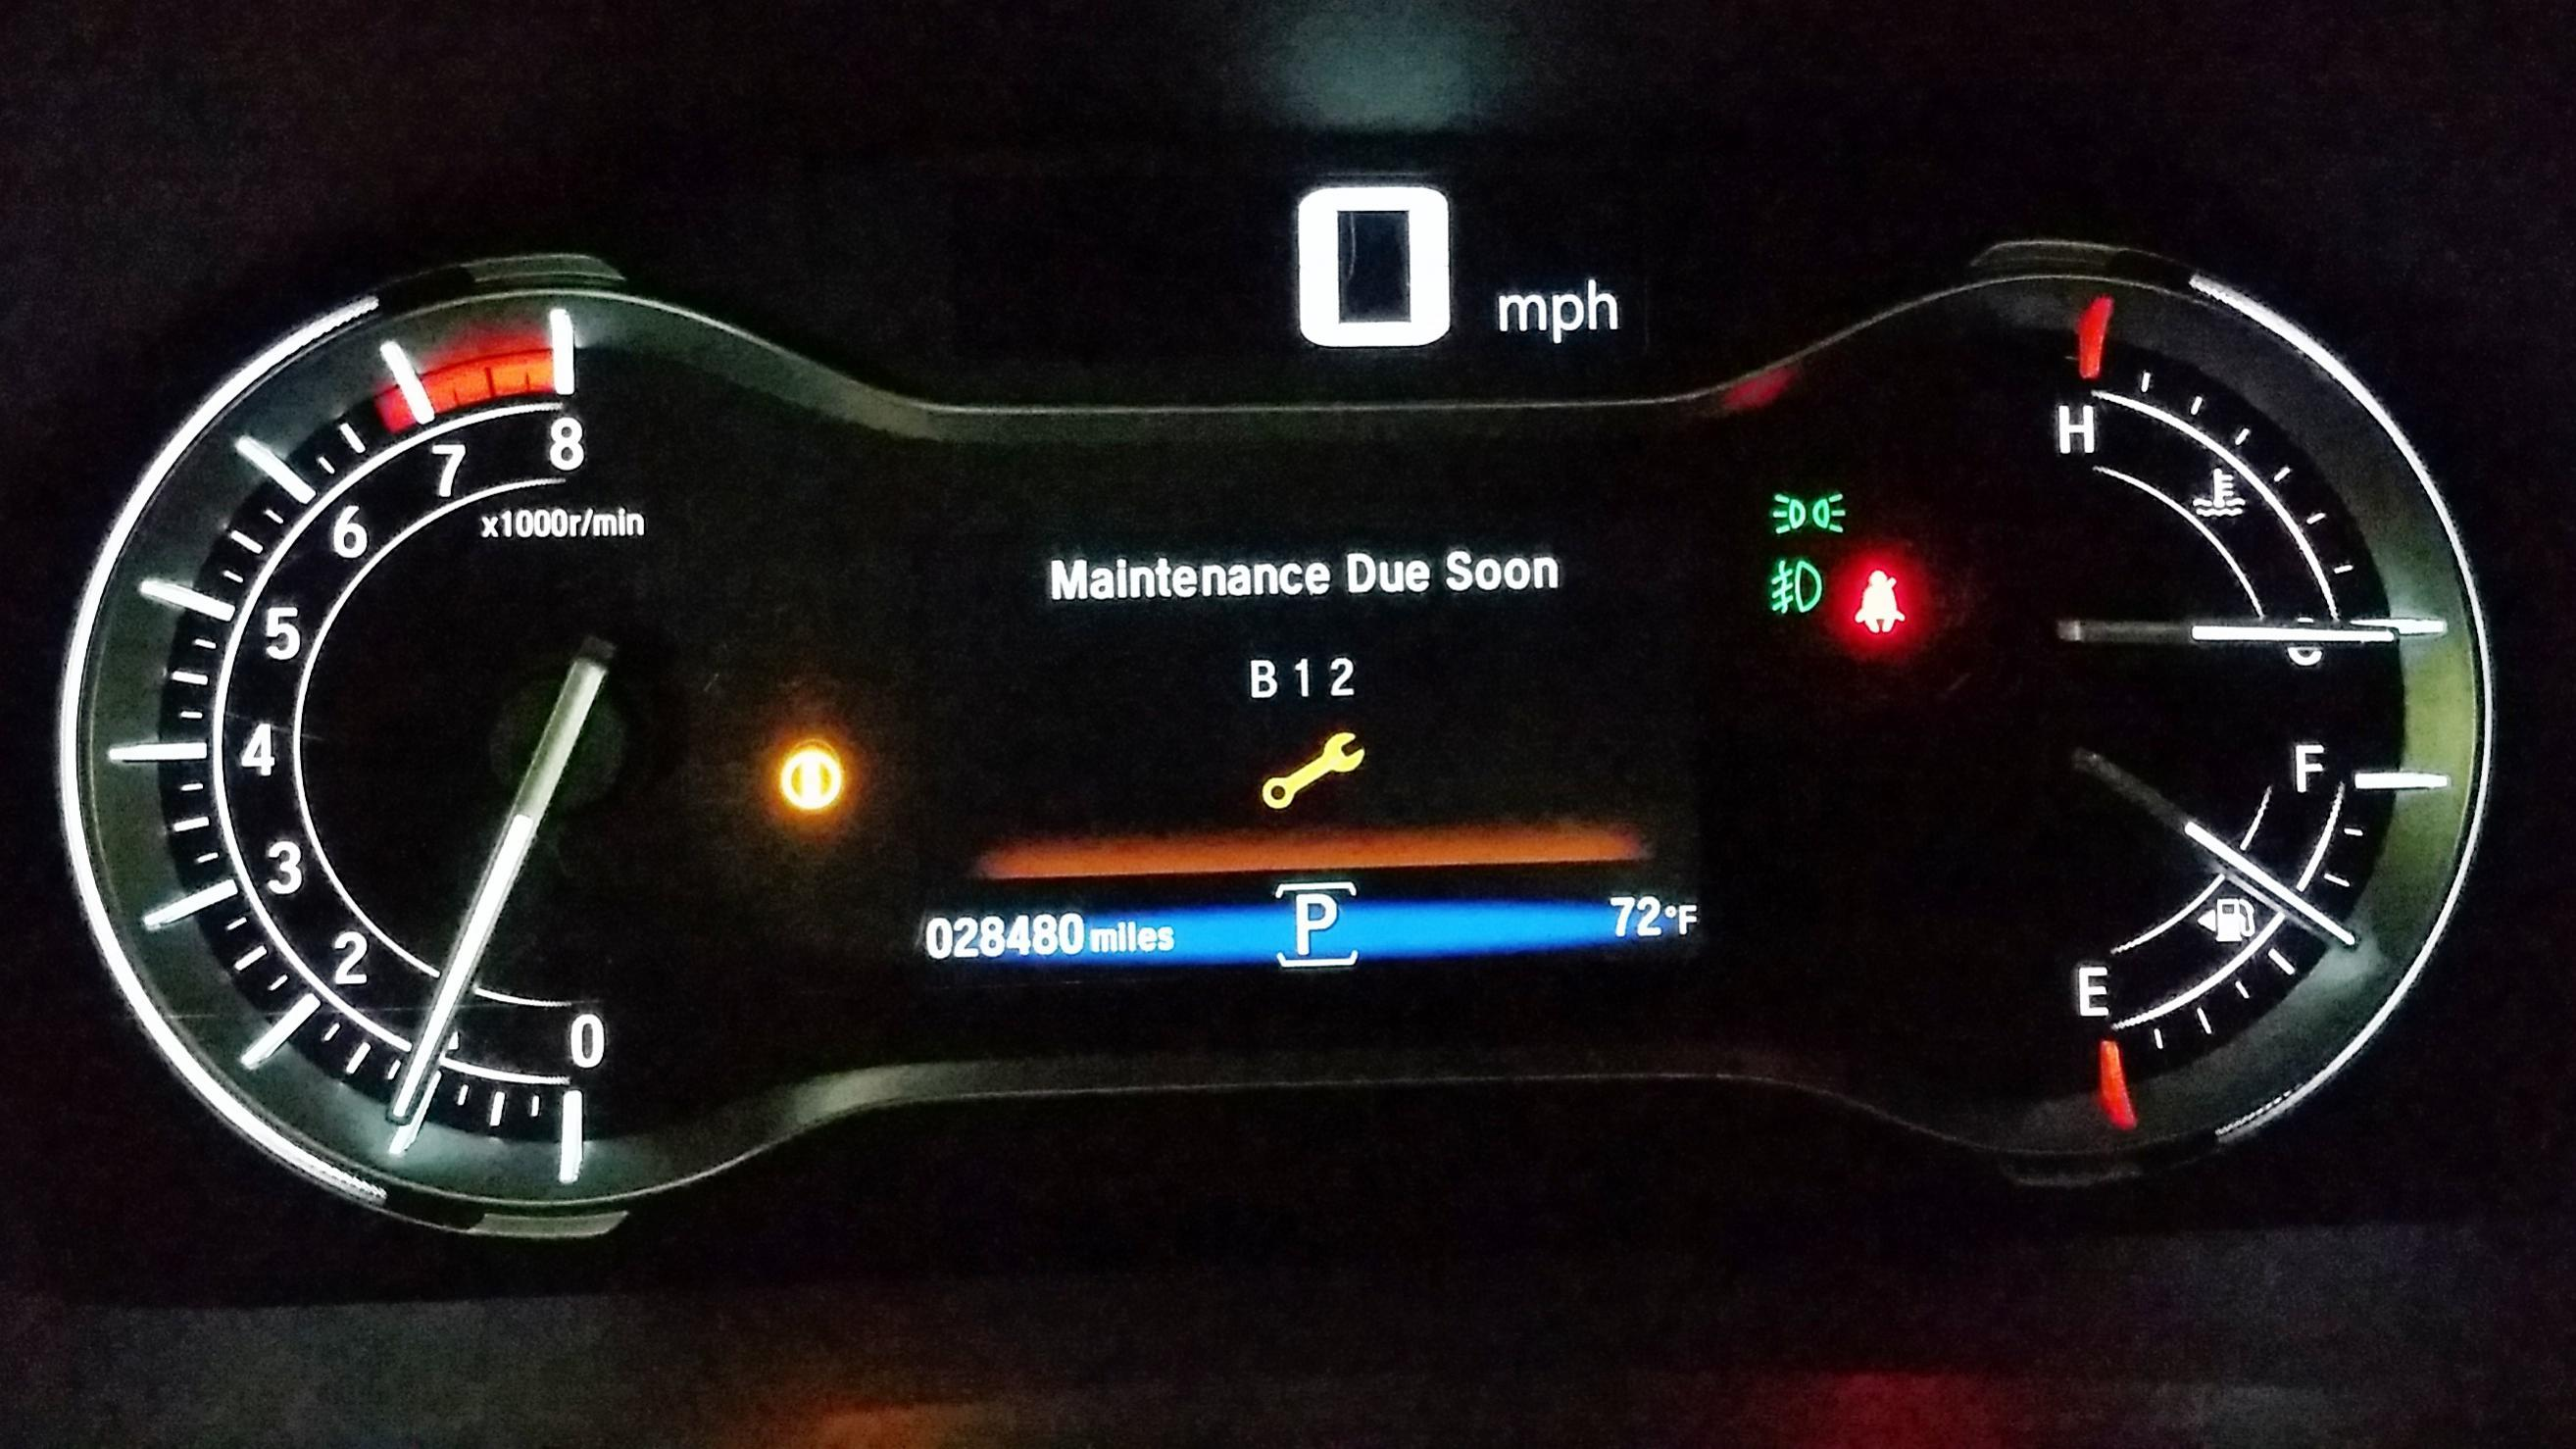 First 30K mile service or Maintenance Due Soon dash light ...